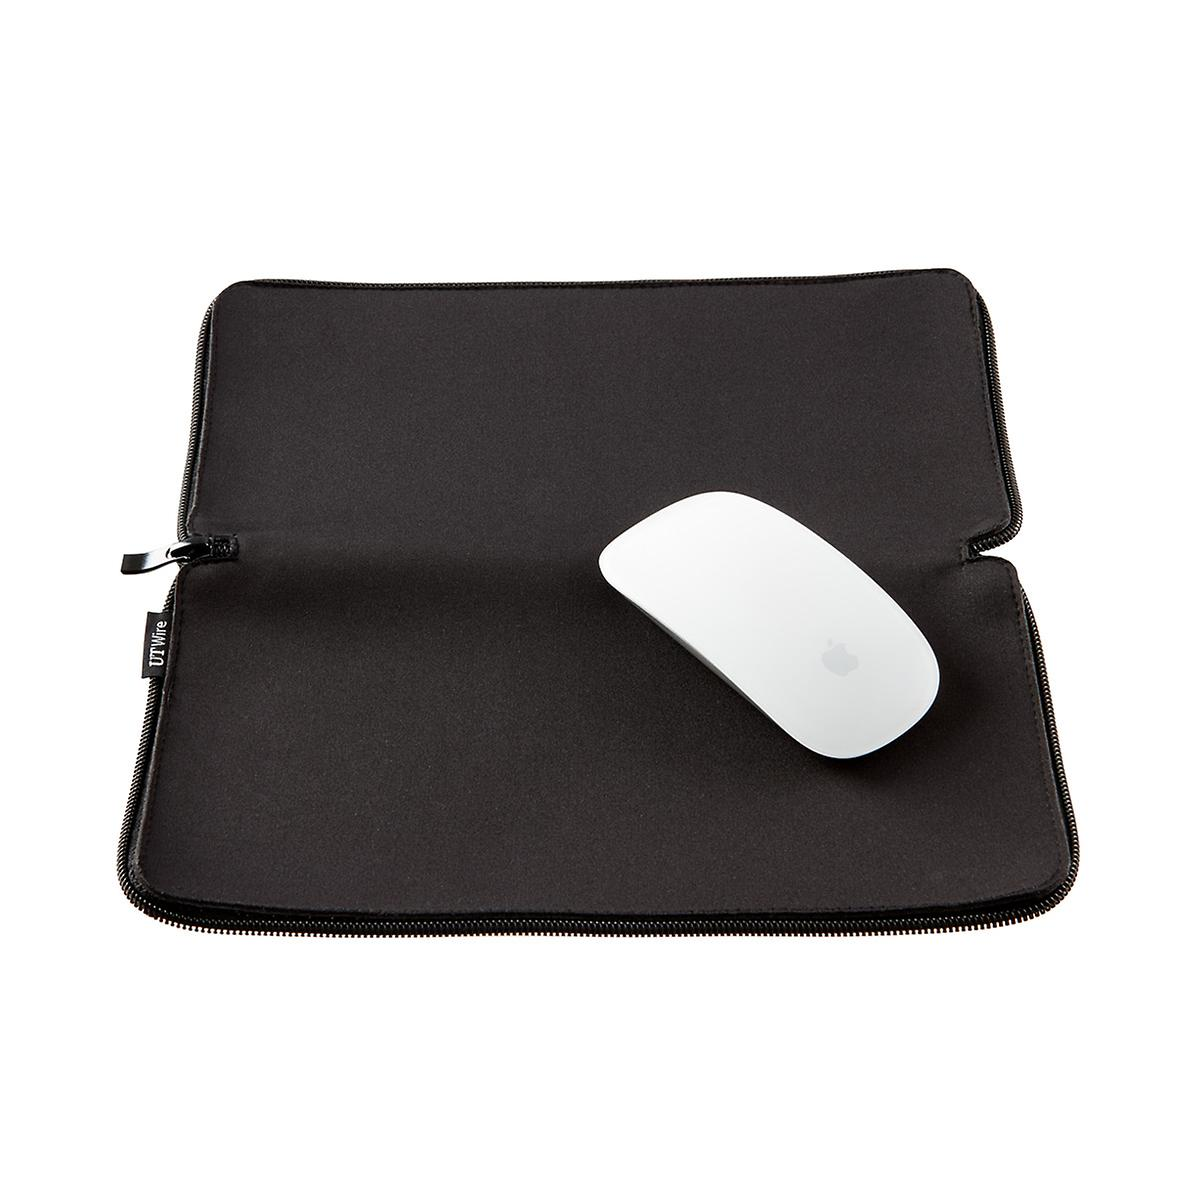 2-in-1 Laptop Accessories Pouch & Mousepad